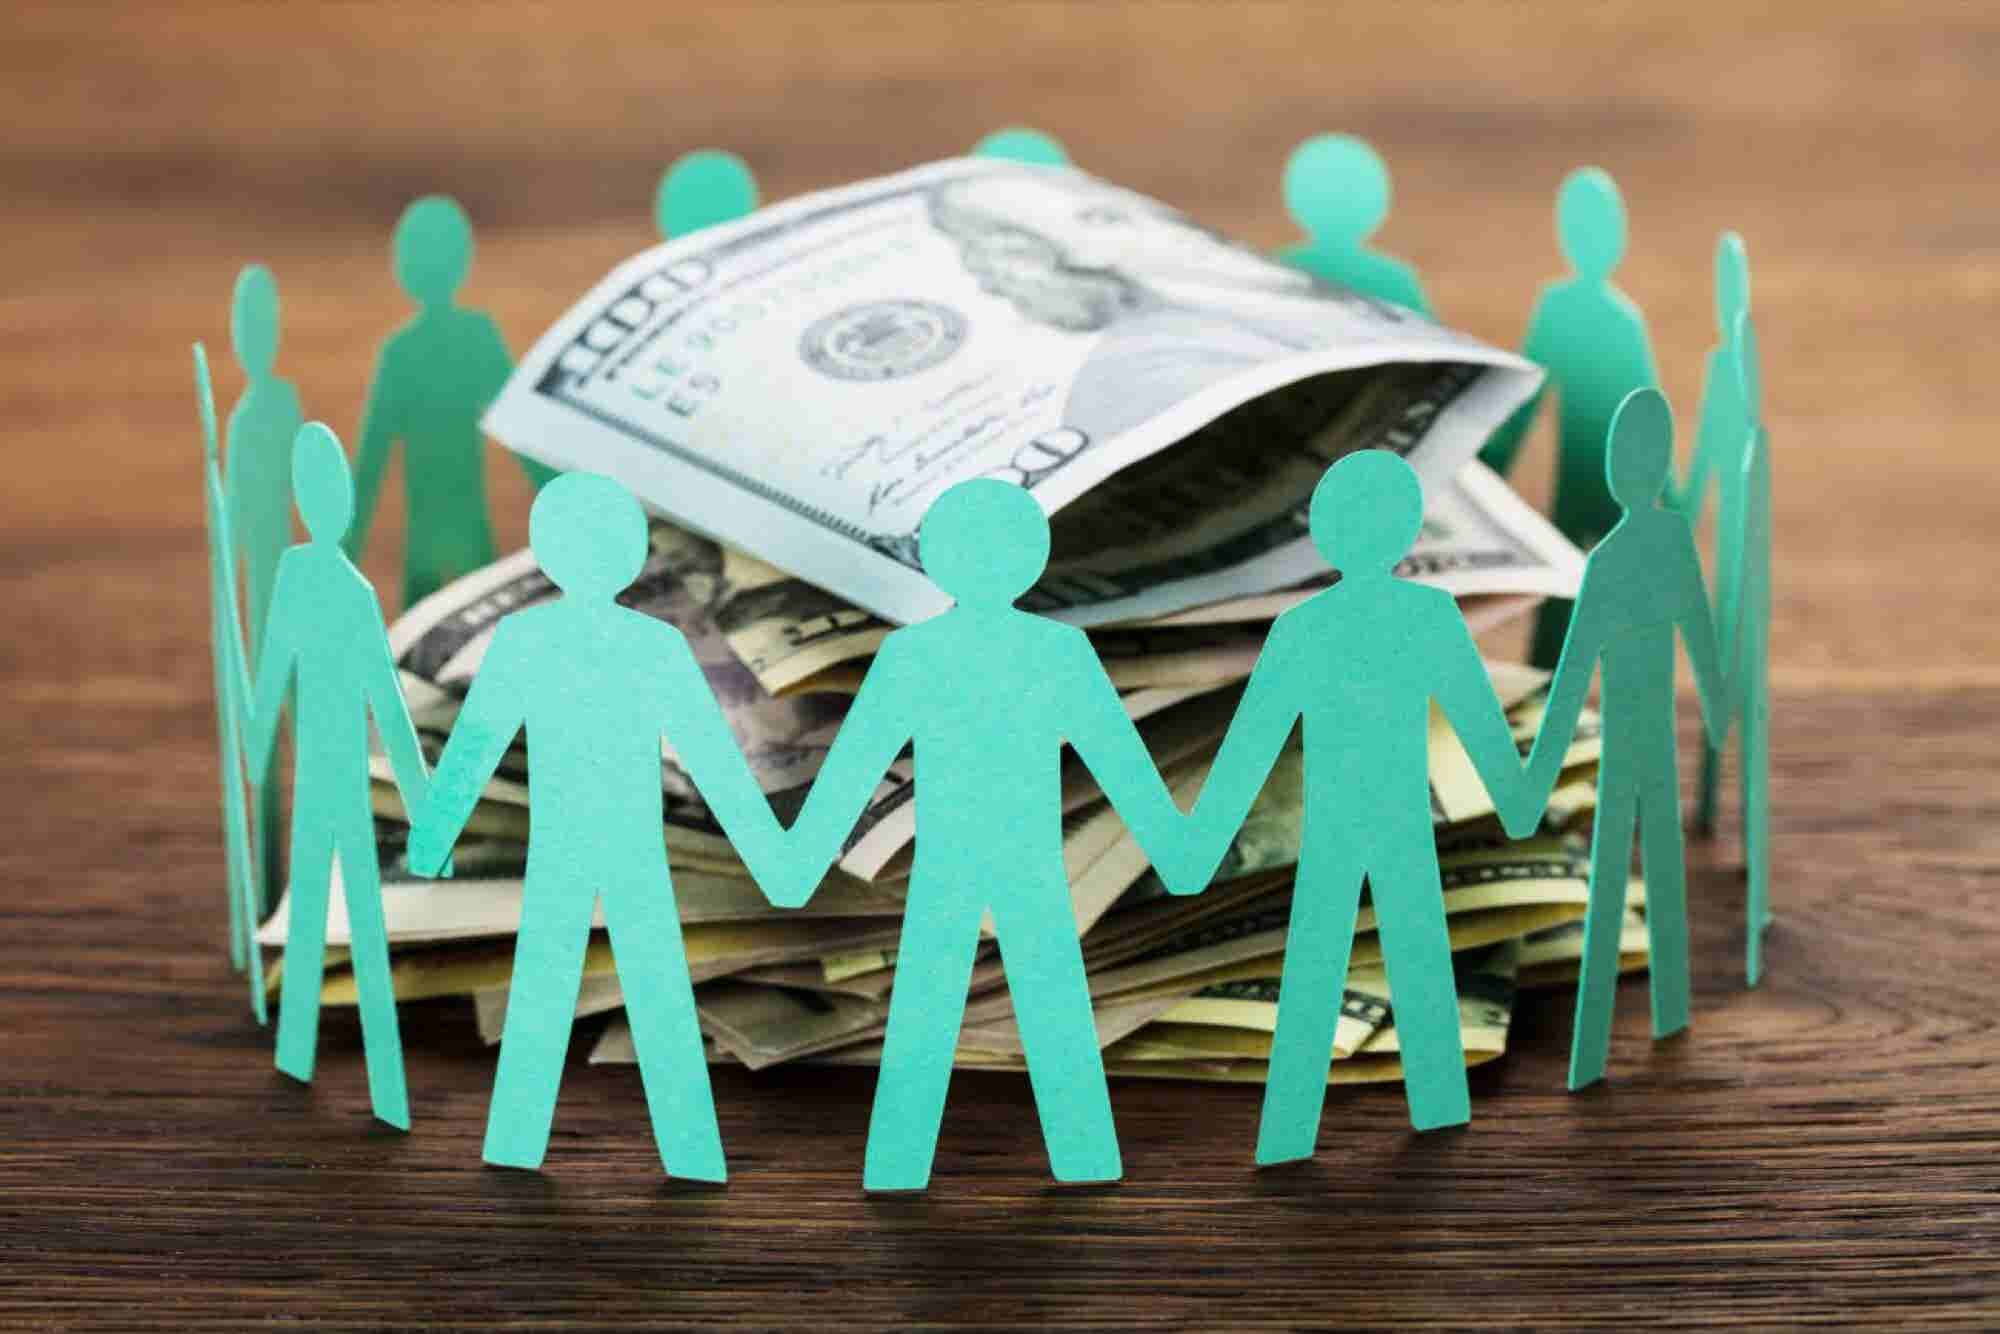 The Data Reveals These 3 Fundamentals for Crowdfunding Success